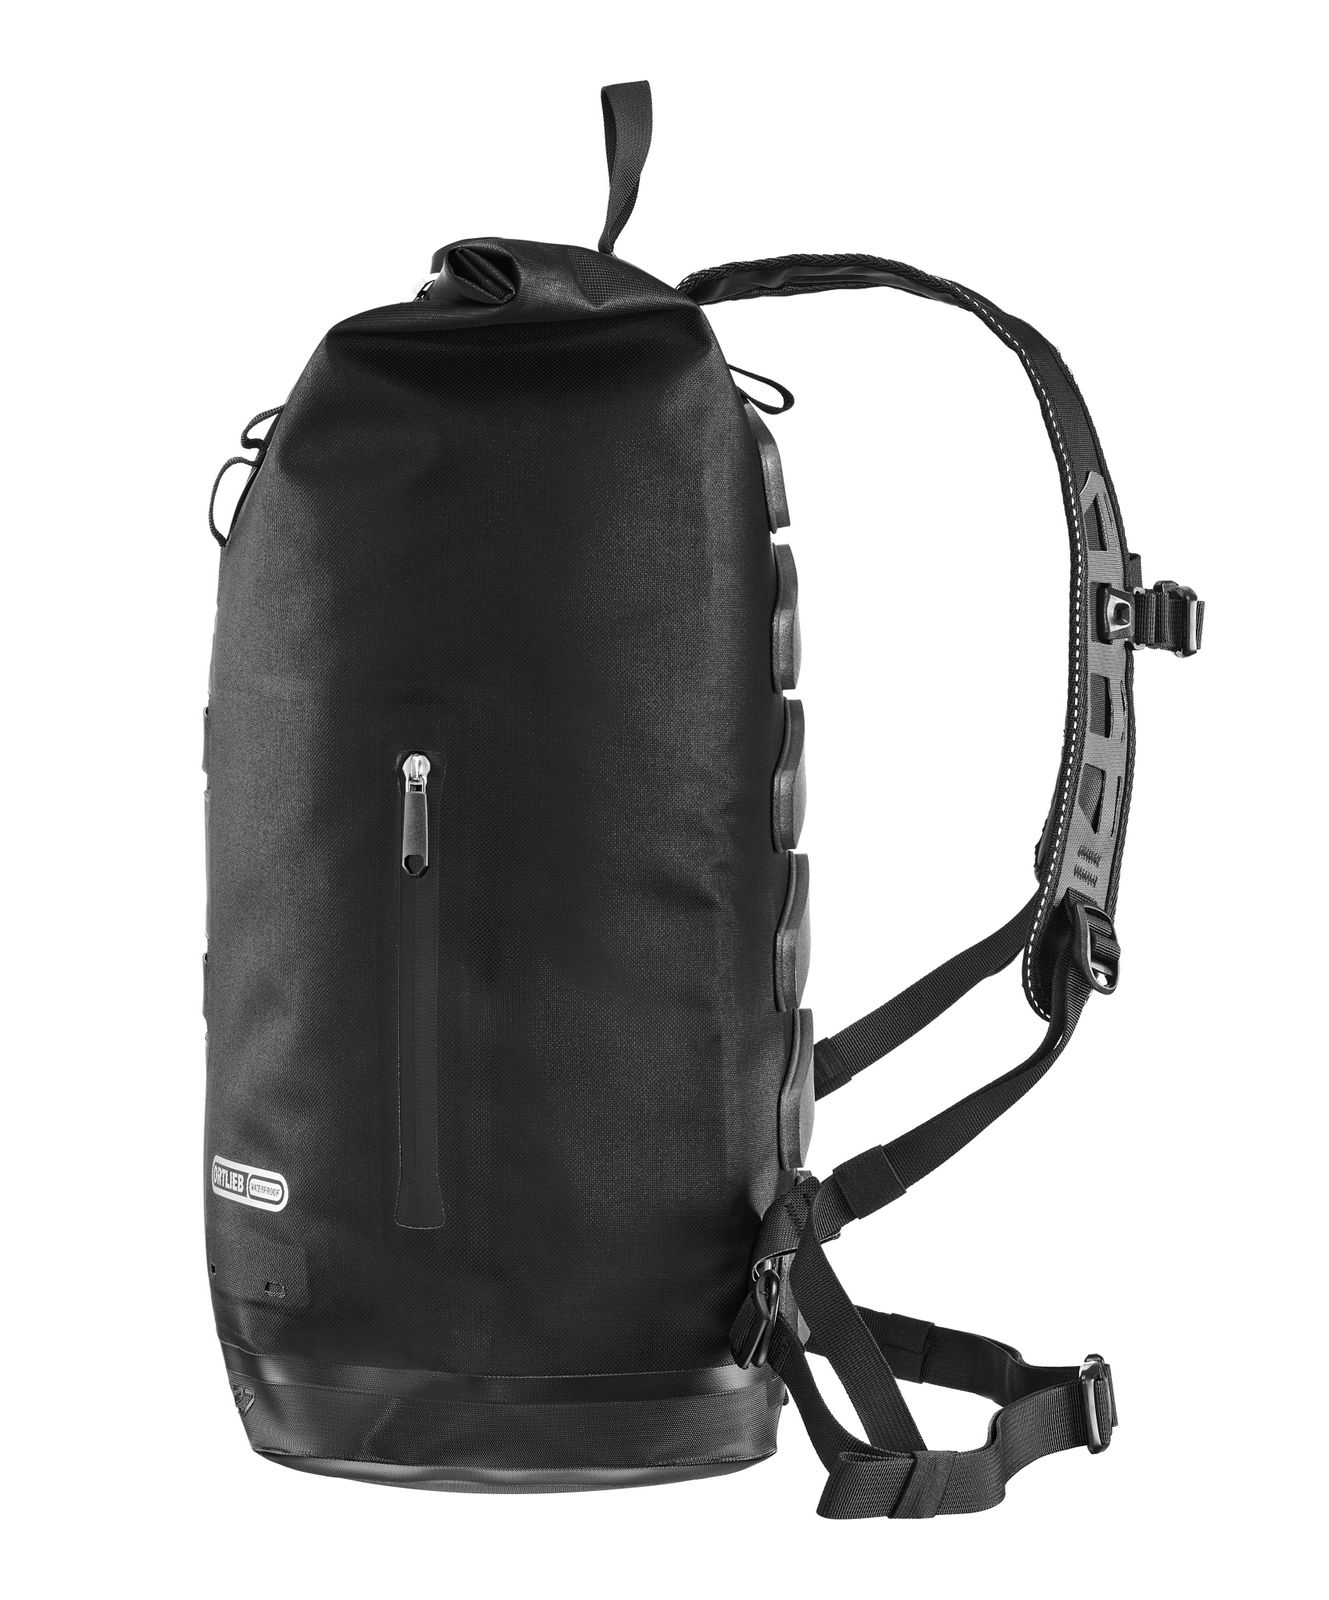 ORTLIEB City Commuter-Daypack City Backpack 27L Black